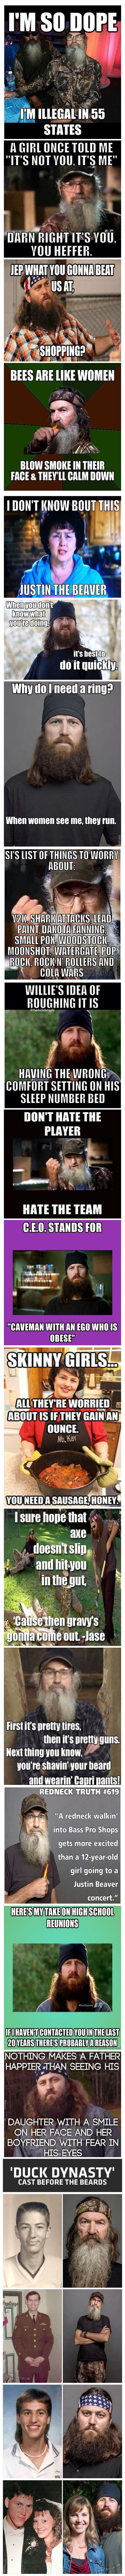 Duck Dynasty at its best…